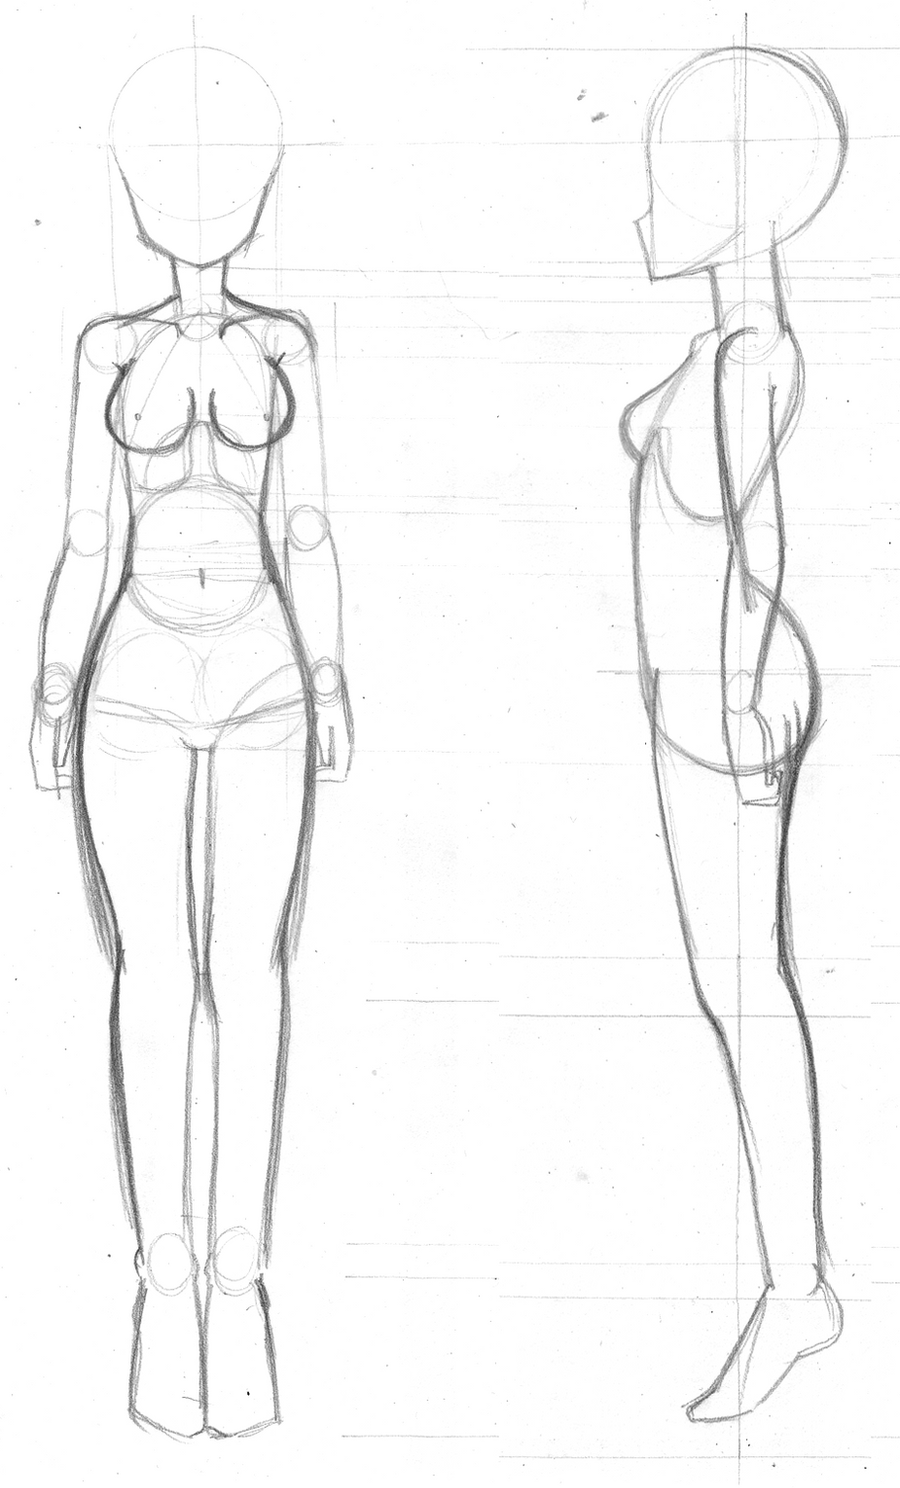 I have eleven How to Draw Manga books, and have been using them to guide my illustration techniques and general knowledge. I set out looking to draw people, specifically female characters, for the purpose of creating product renderings specific to military, LEO, and combat dirtyinstalzonevx6.gas: